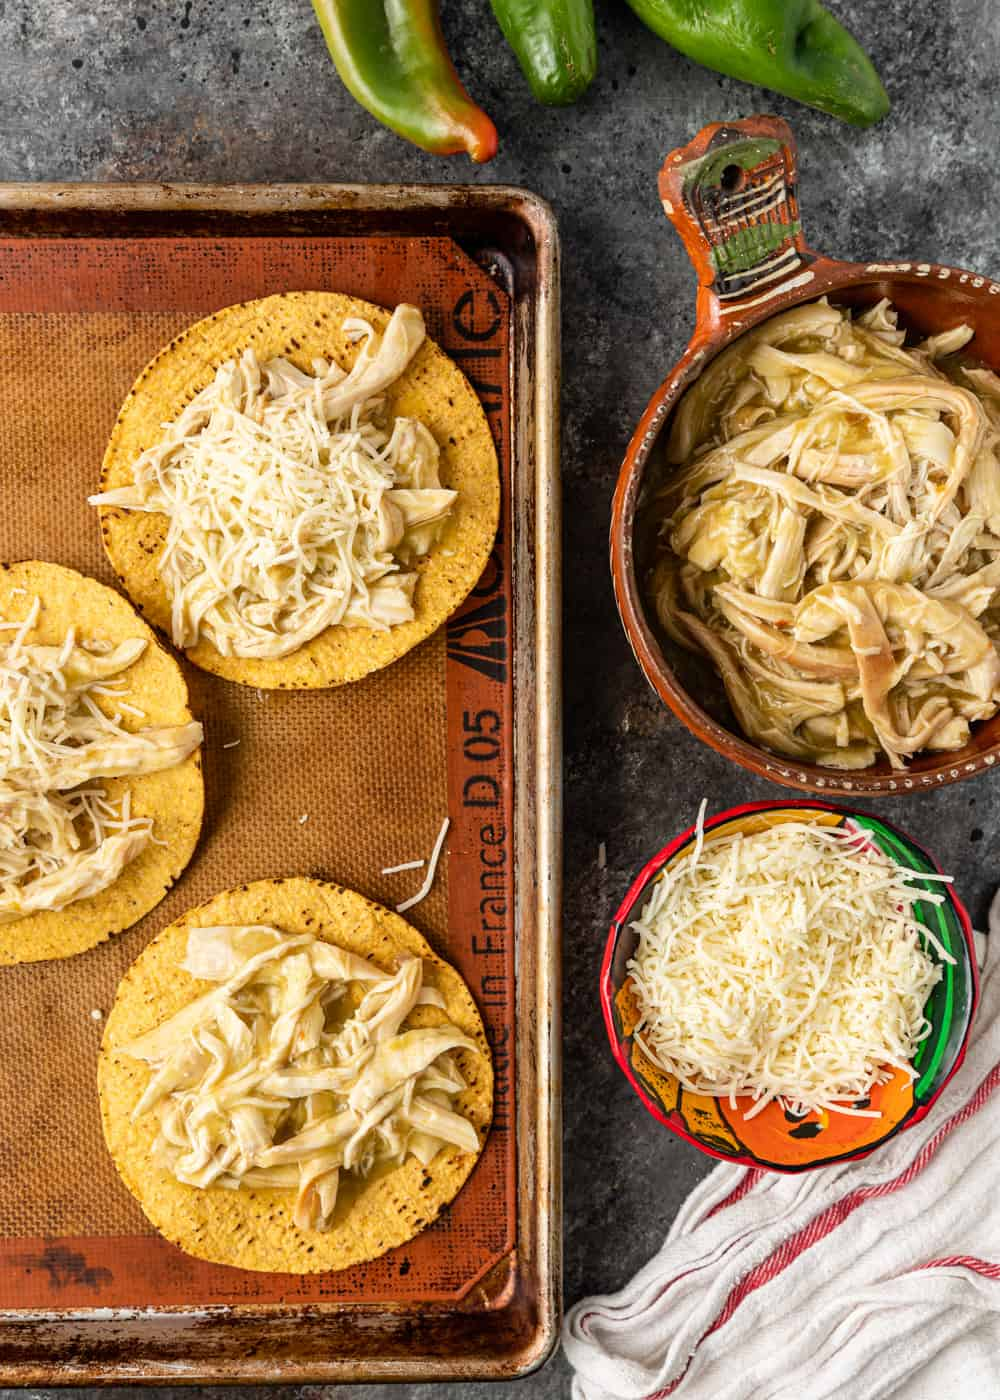 assembling a chicken tostada recipe with shredded chicken and shredded cheese